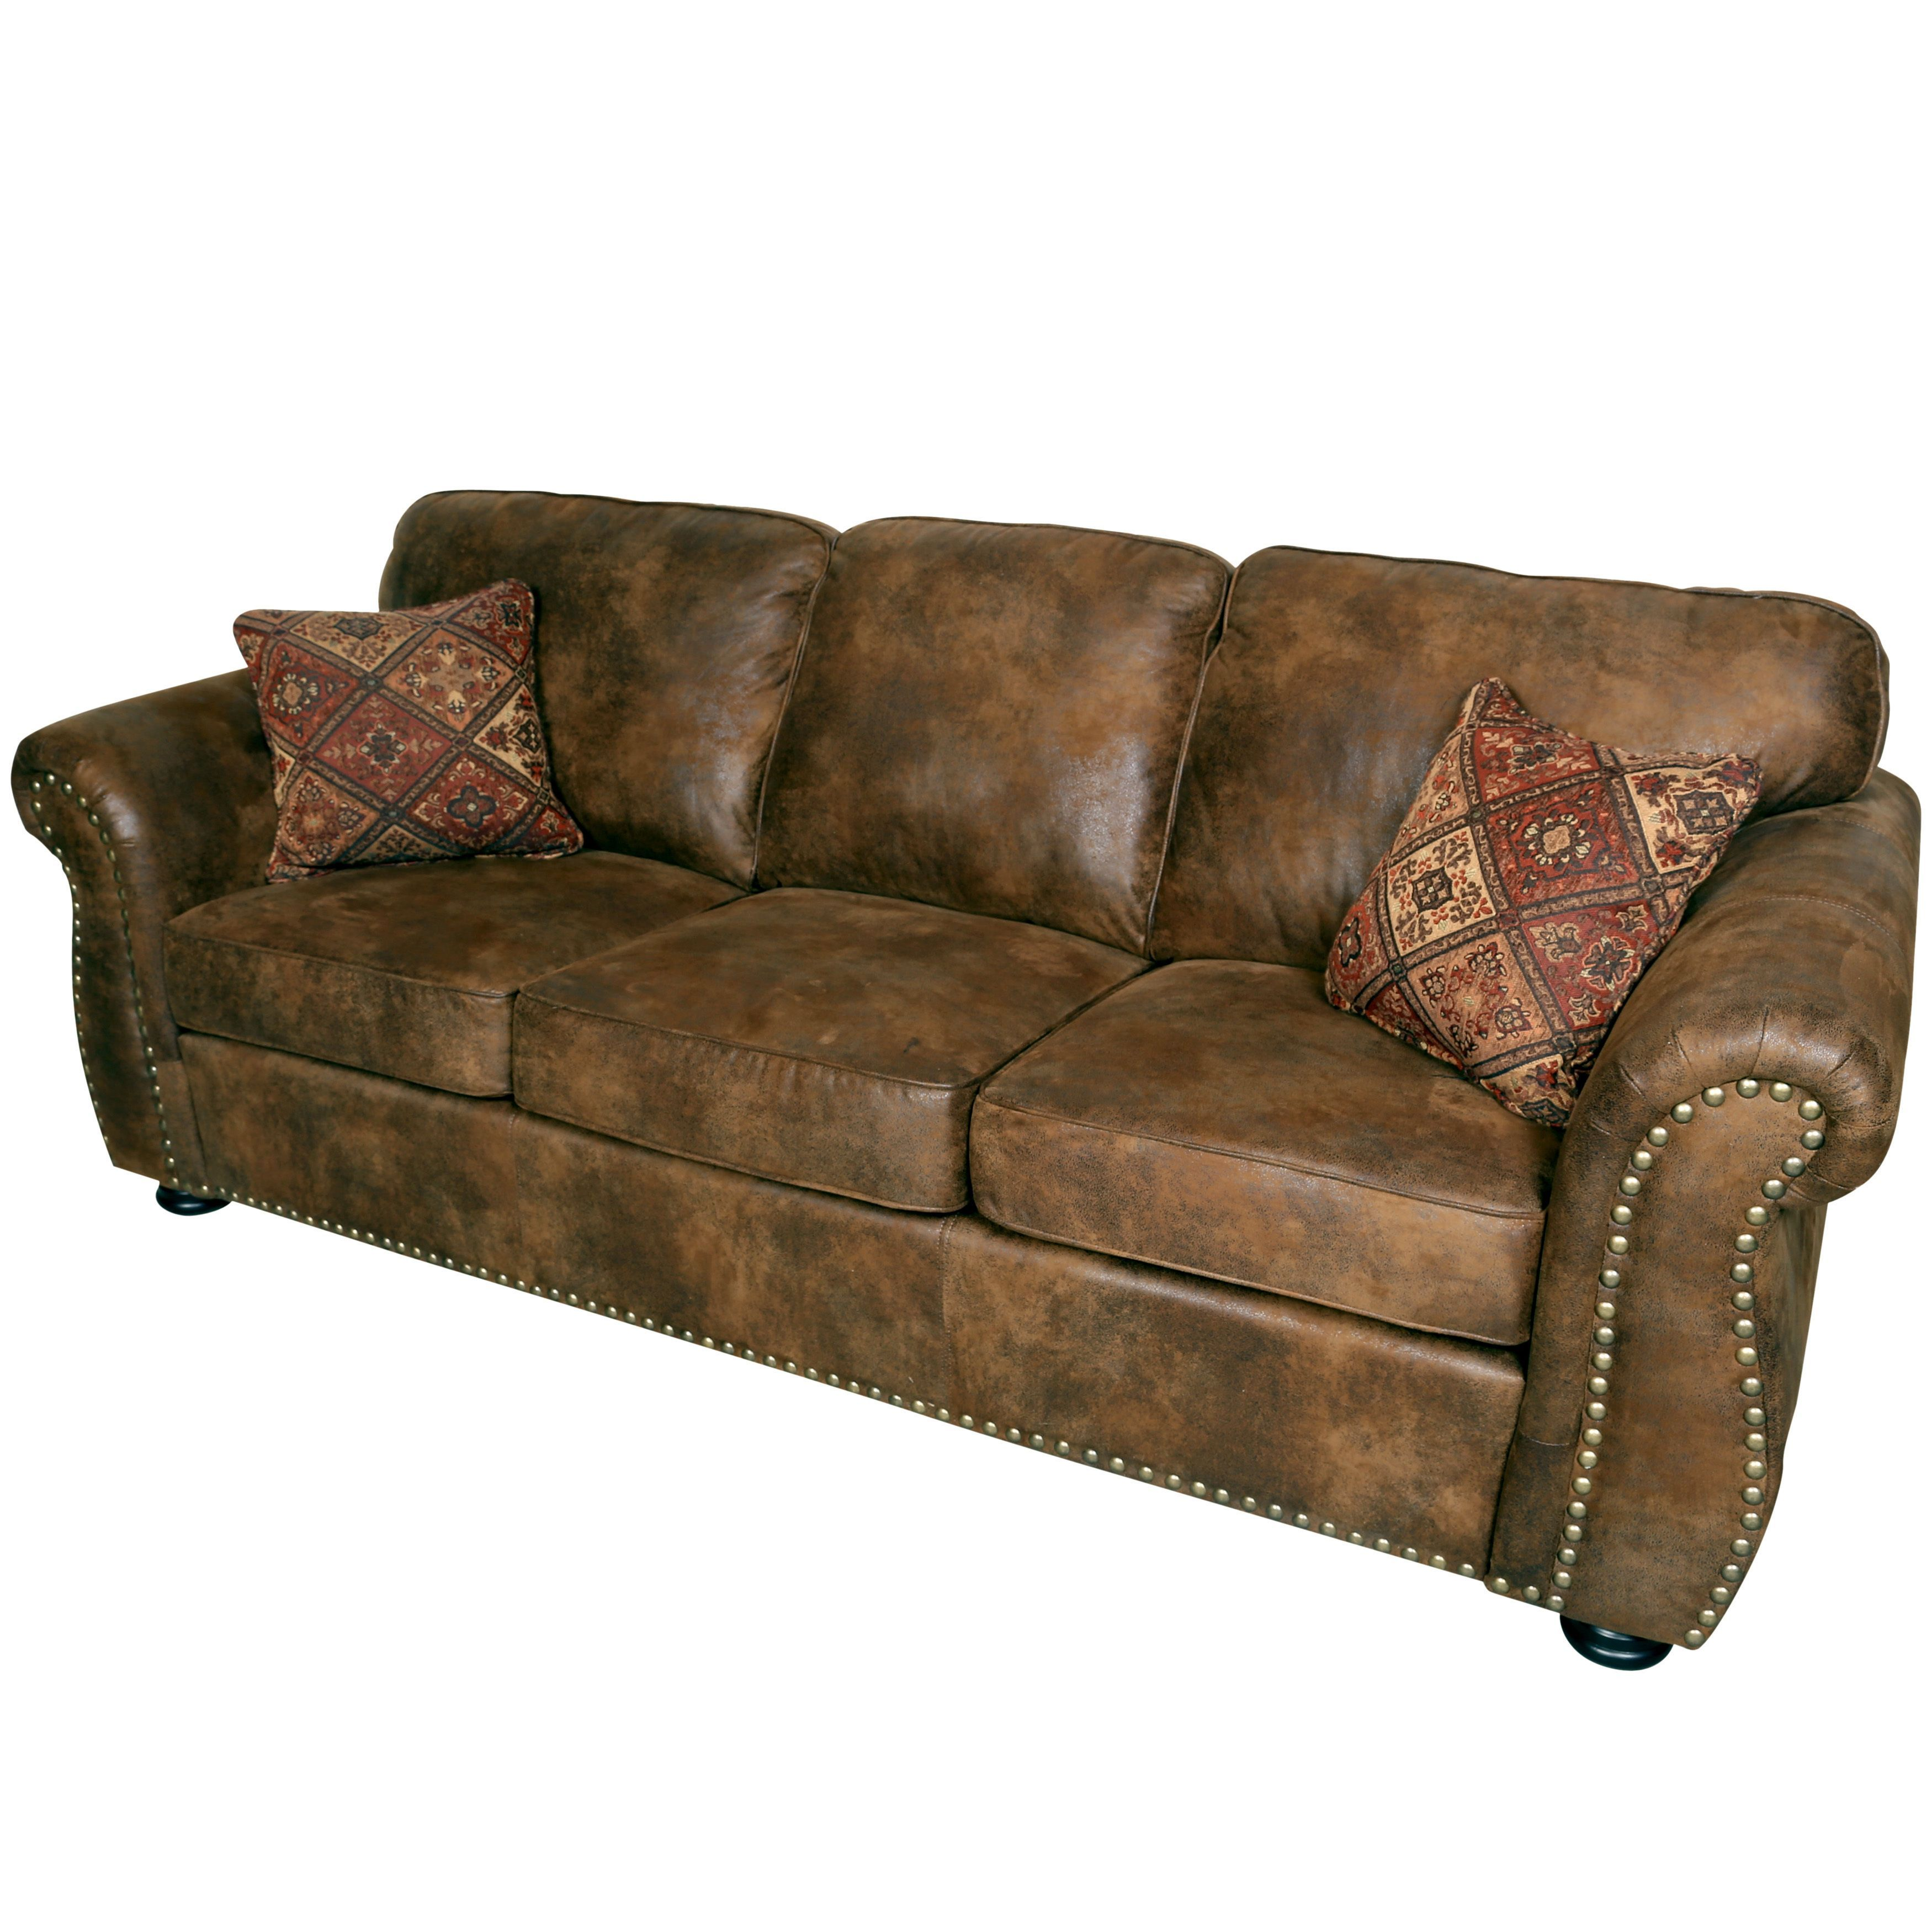 Best Porter Elk River Brown Microfiber Faux Suede Leather Sofa 640 x 480